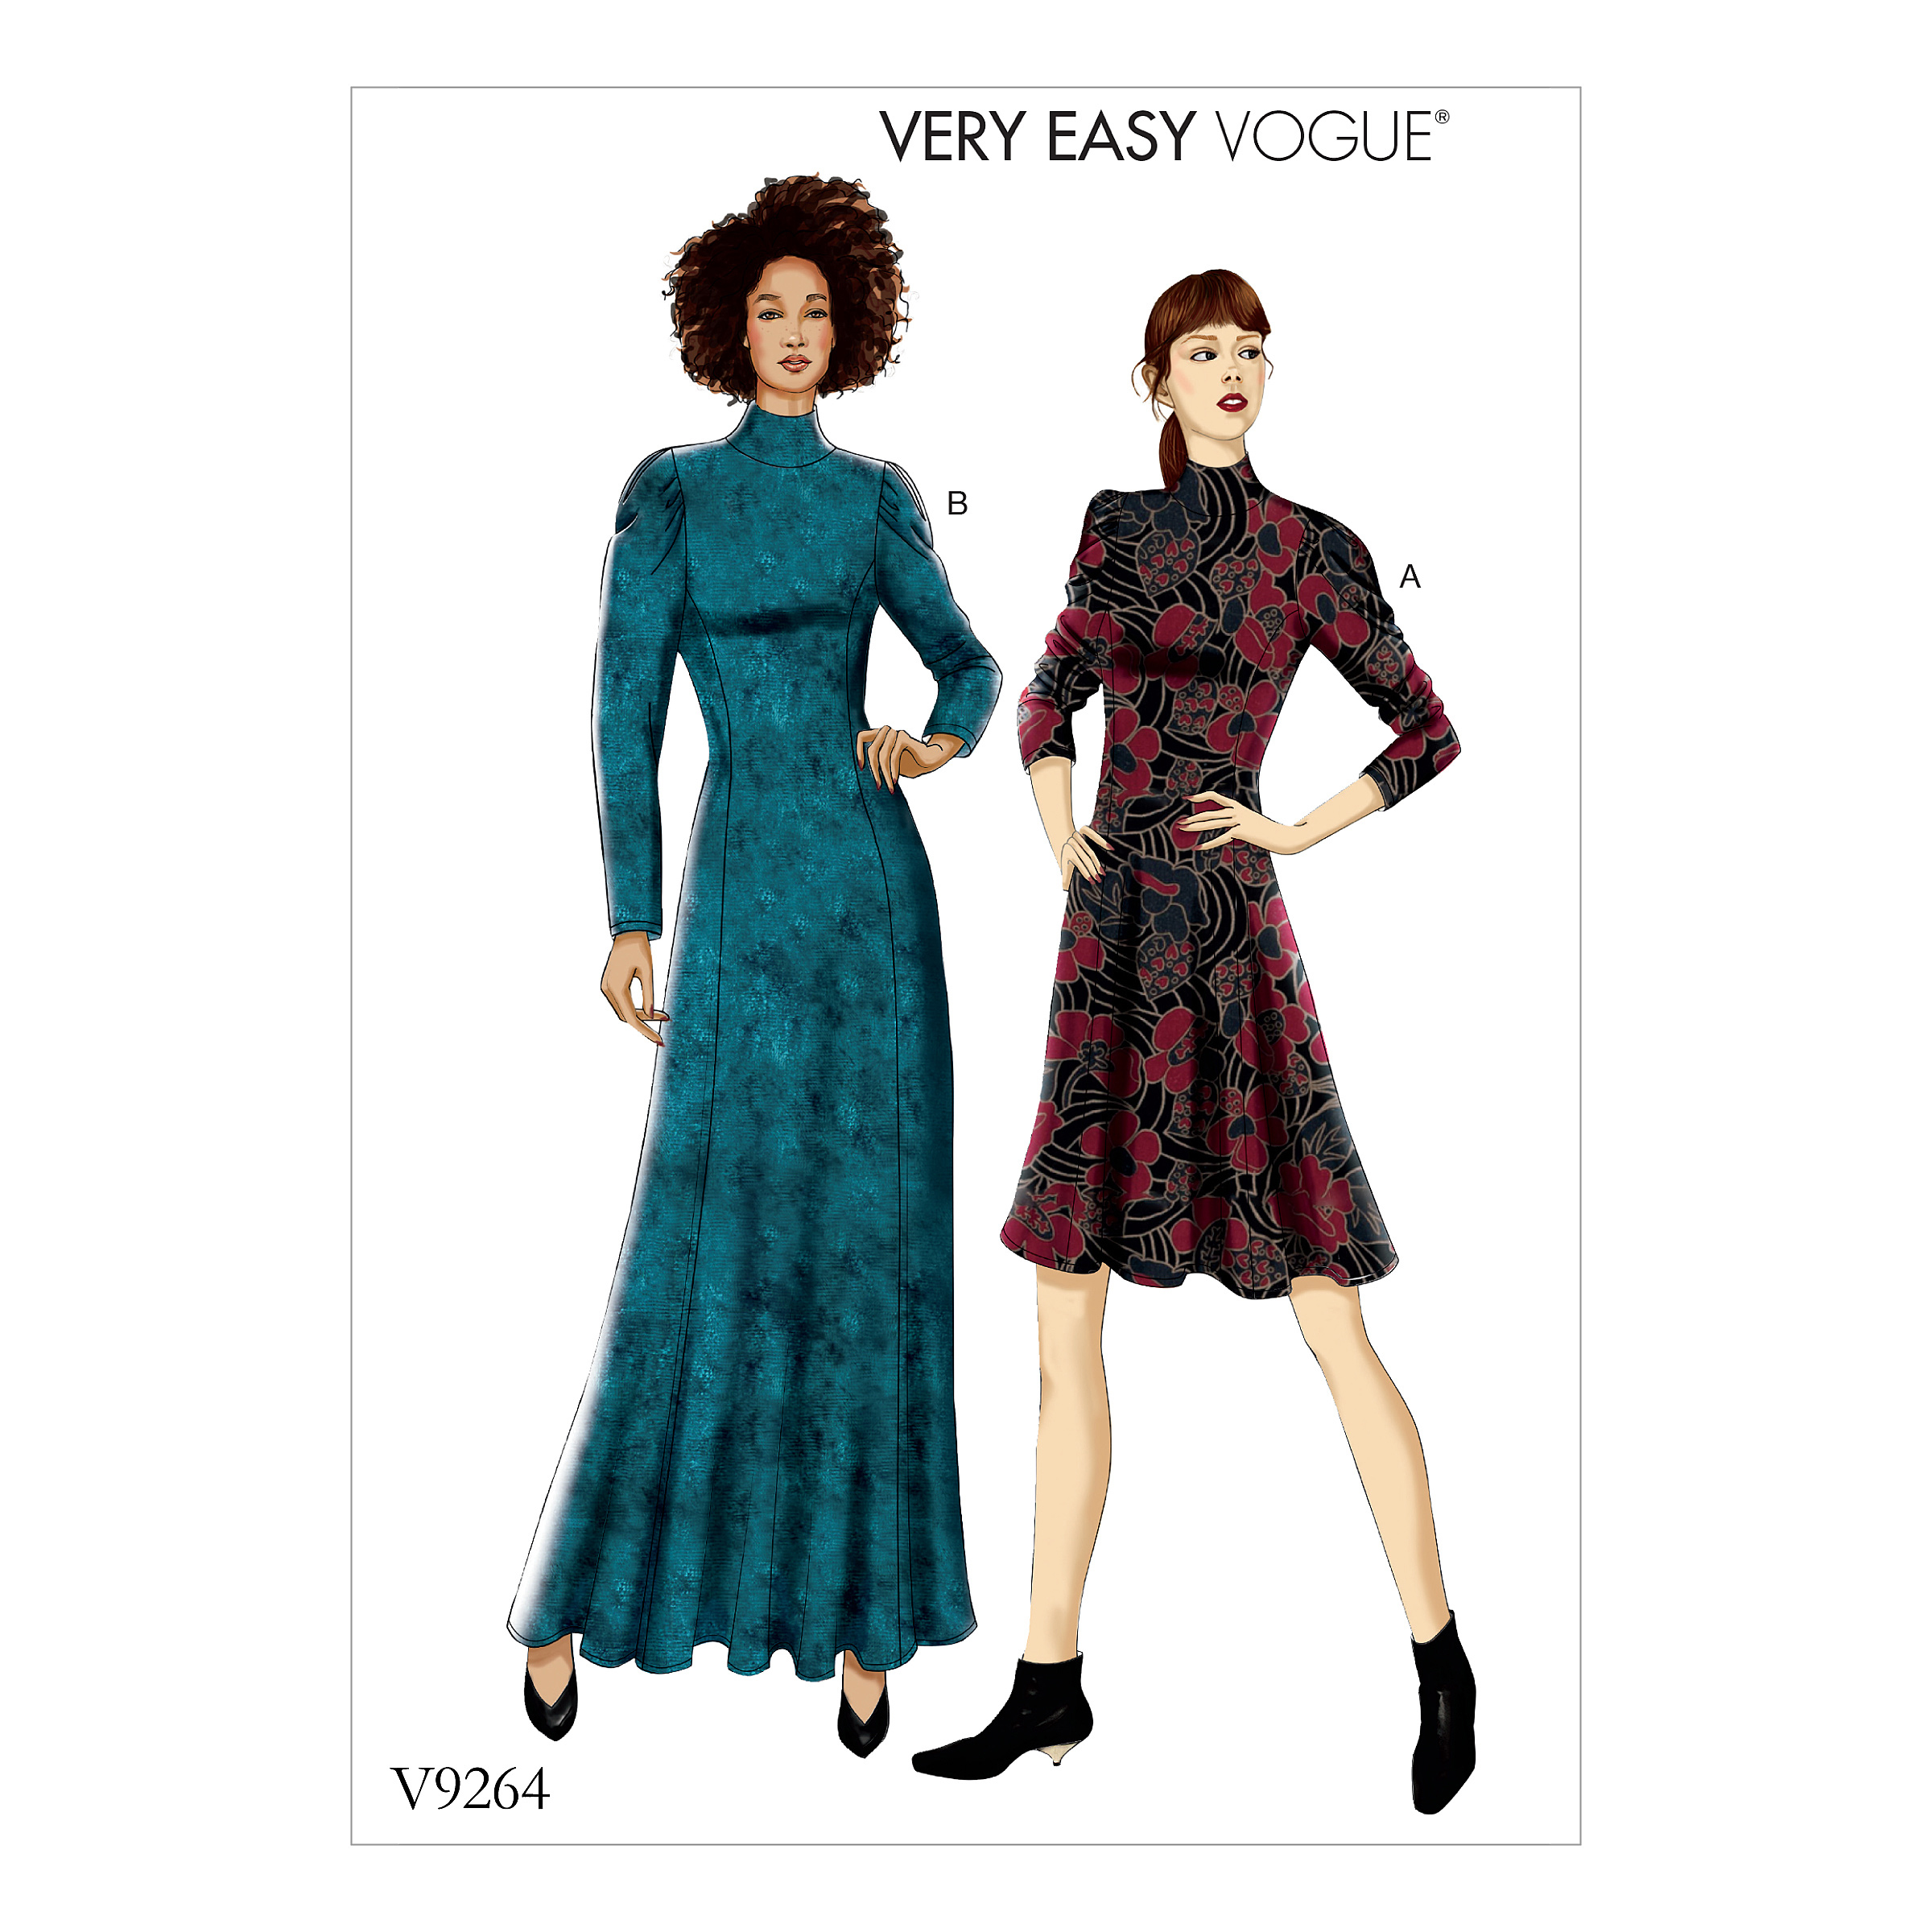 Vogue Patterns Sewing Pattern MISSES'/MISSES' PETITE KNIT, FIT-AND-FLARE DRESSES-6-8-10-12-14